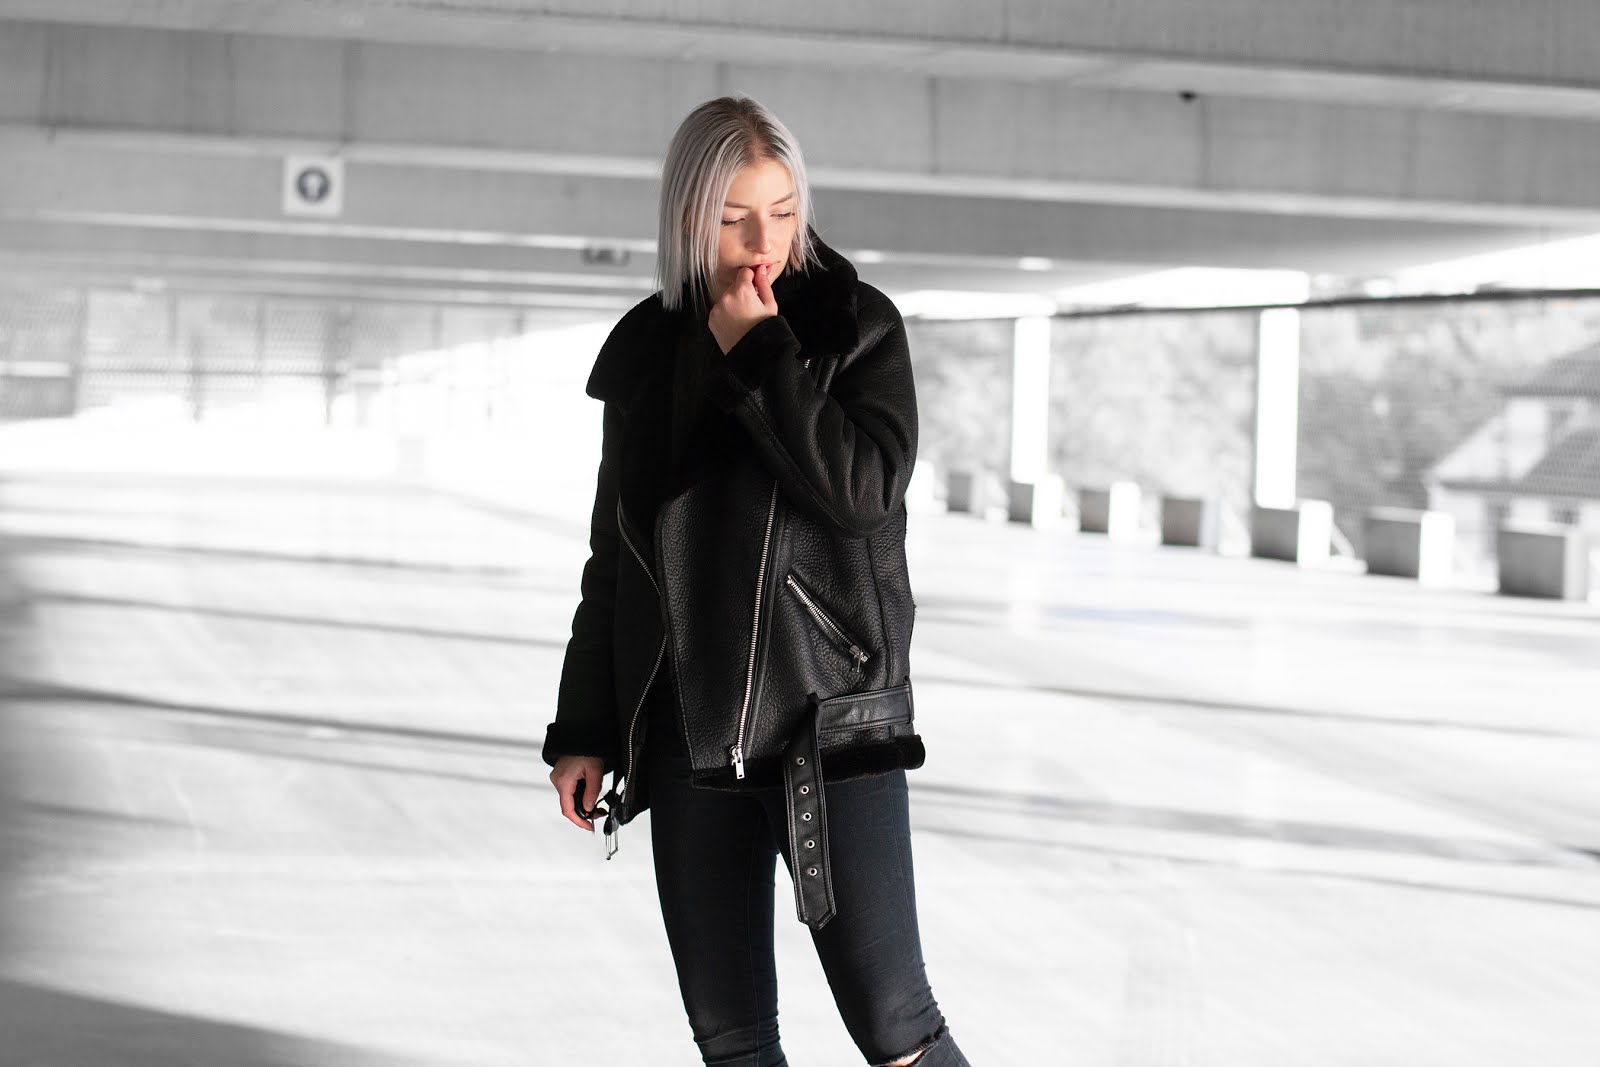 Sacha shoes, na-kd, biker boots, shearling coat, all black, minimal outfit, street style, 2019, trends, win free shoes